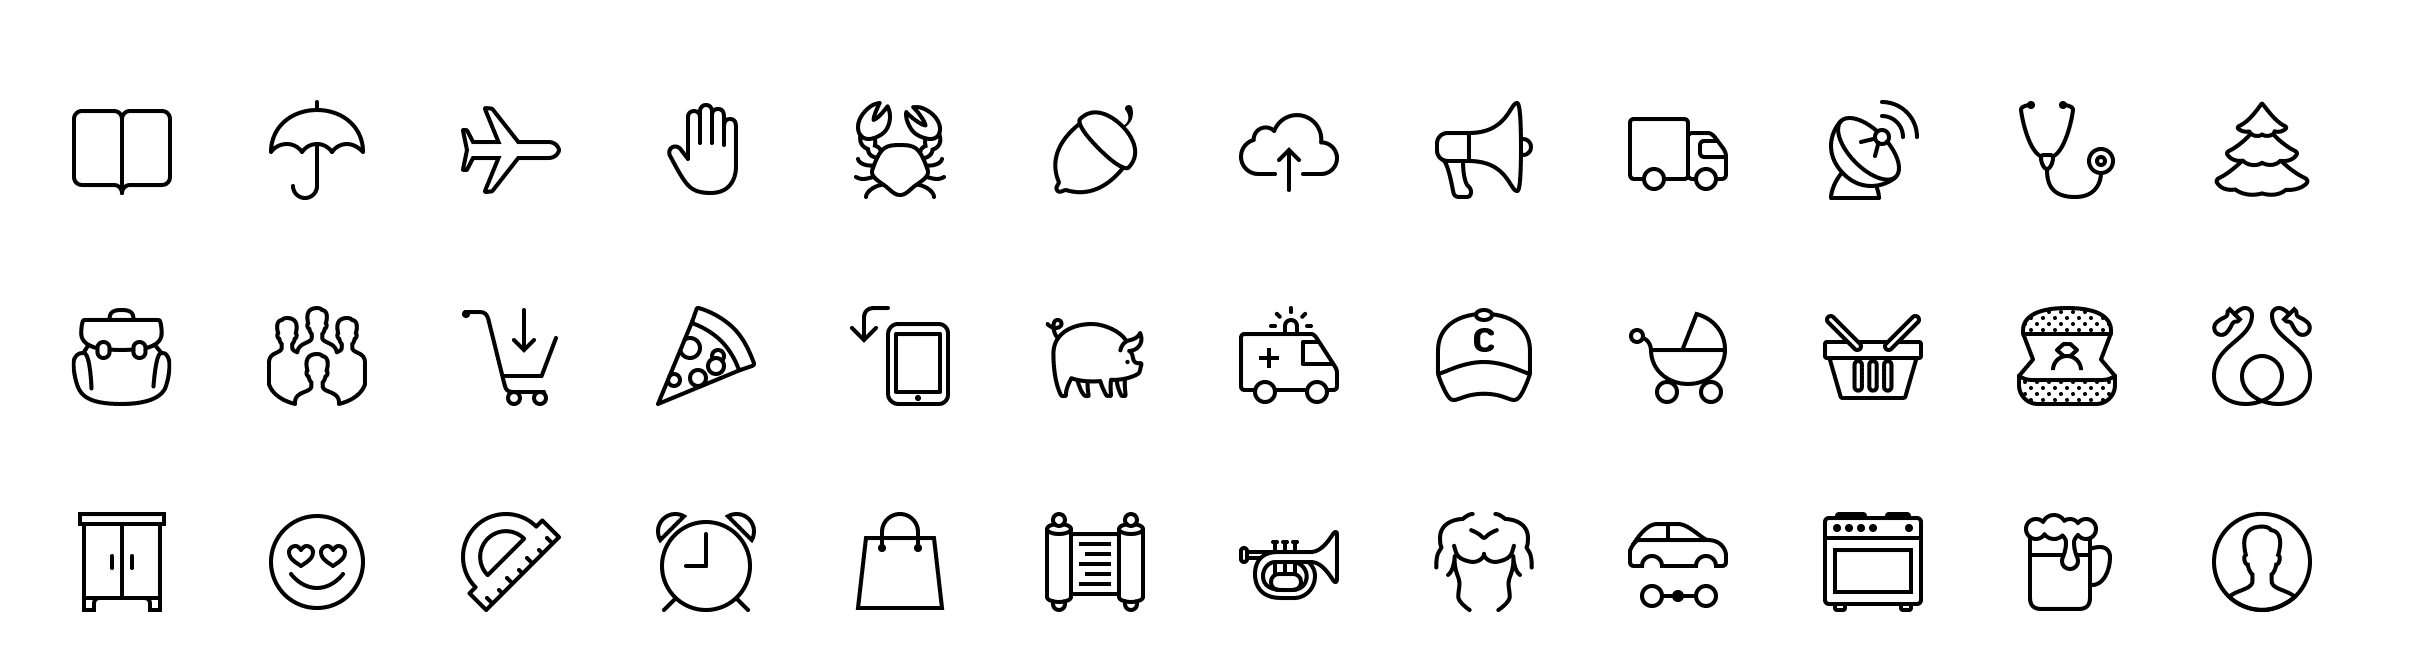 iOS 7 icons (icons in the style of iOS 7)